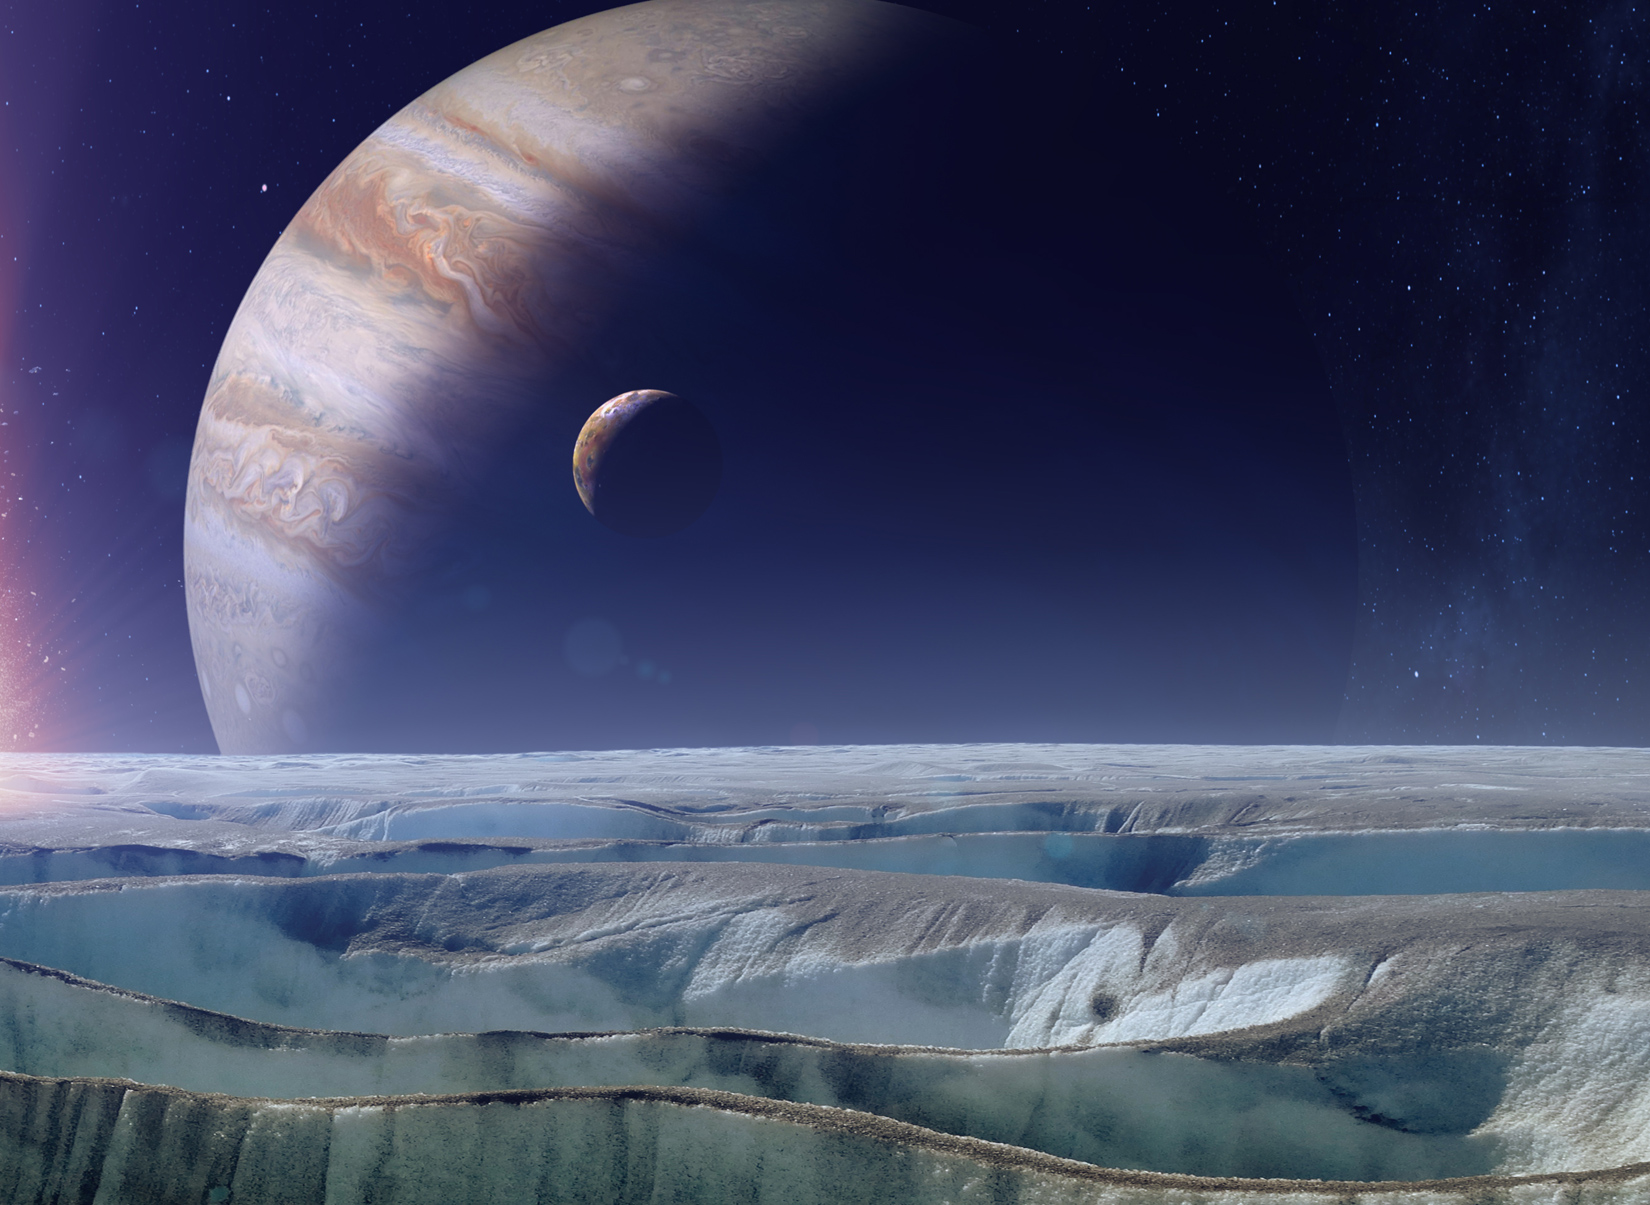 Is it time to restore Pluto's status as a planet?